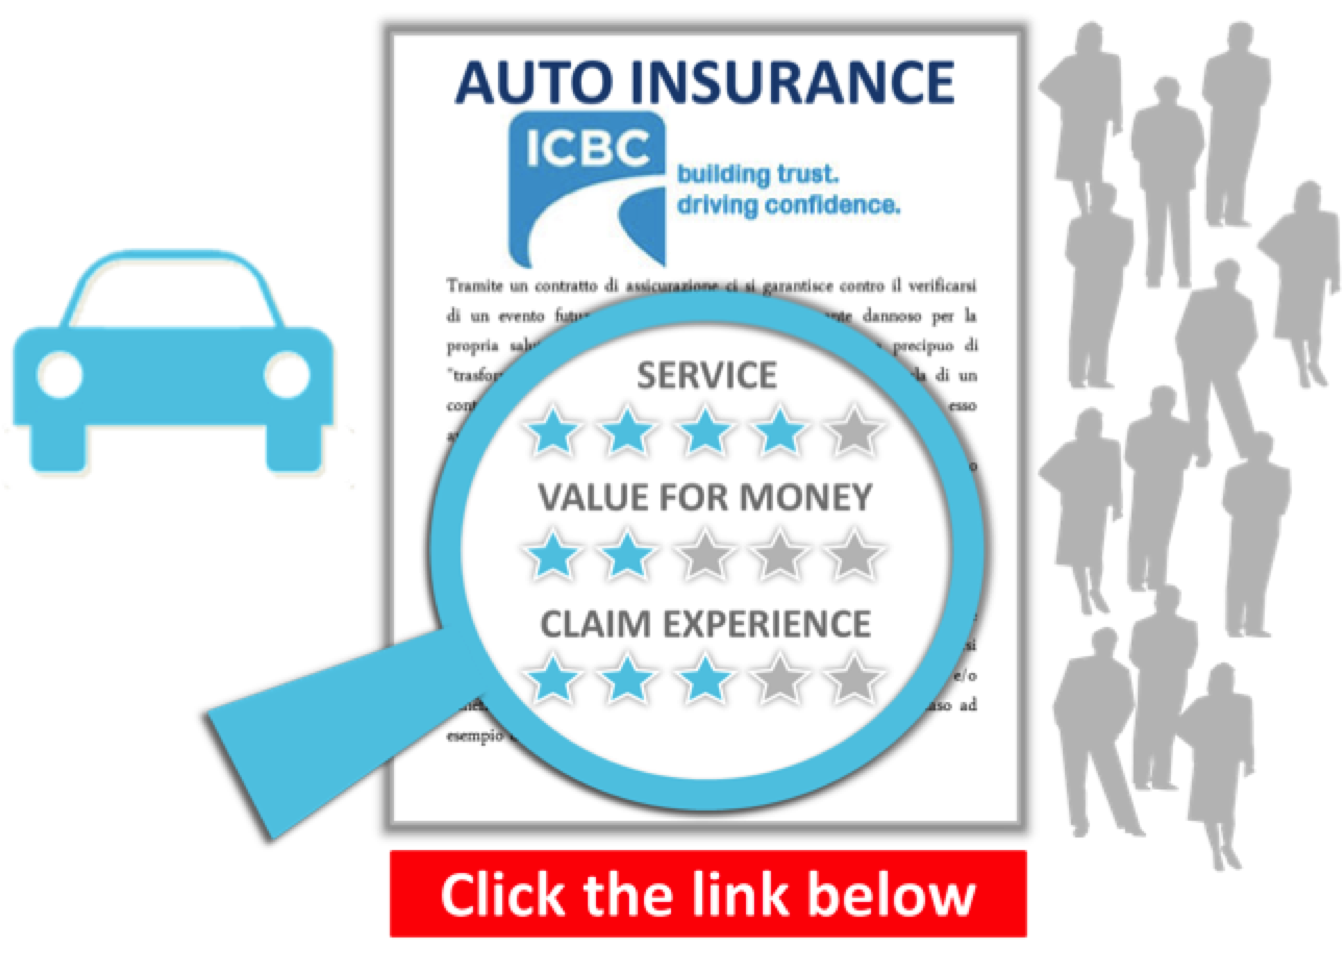 Independent Consumer Reviews For Icbc The Insurance Corporation